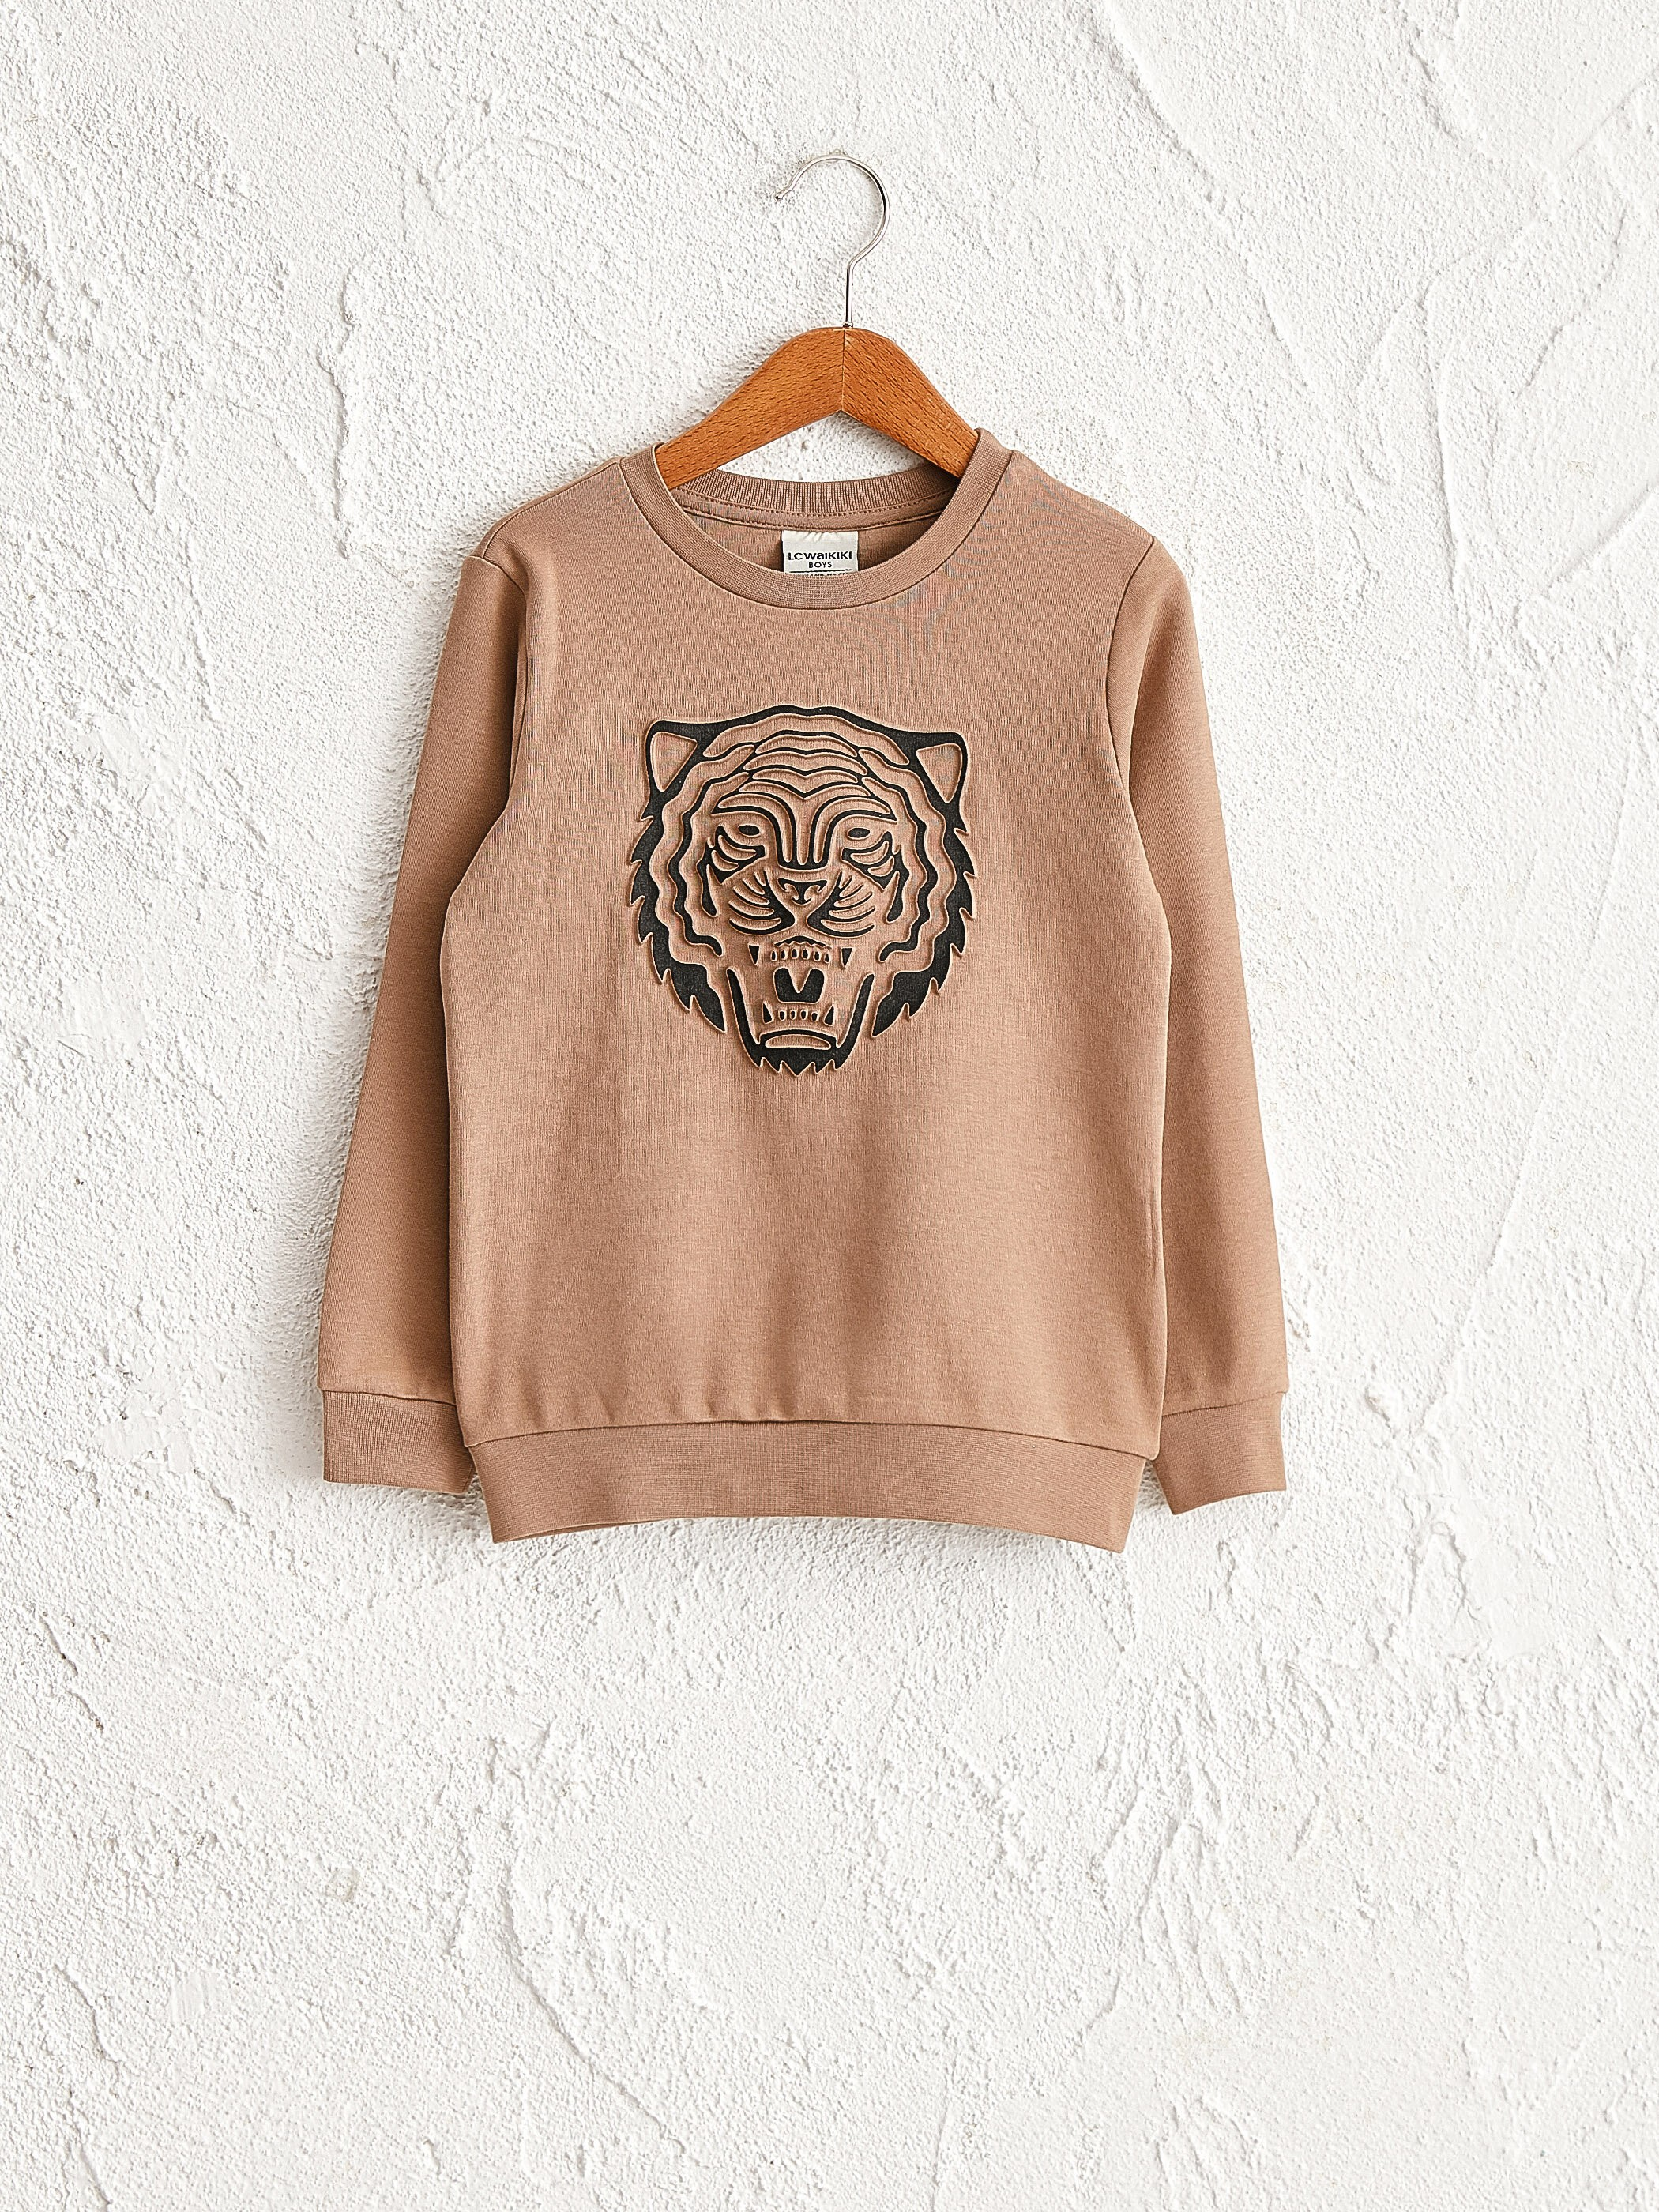 BEIGE - Boy's Printed Sweatshirt Father and Son Matching - 0WAG98Z4